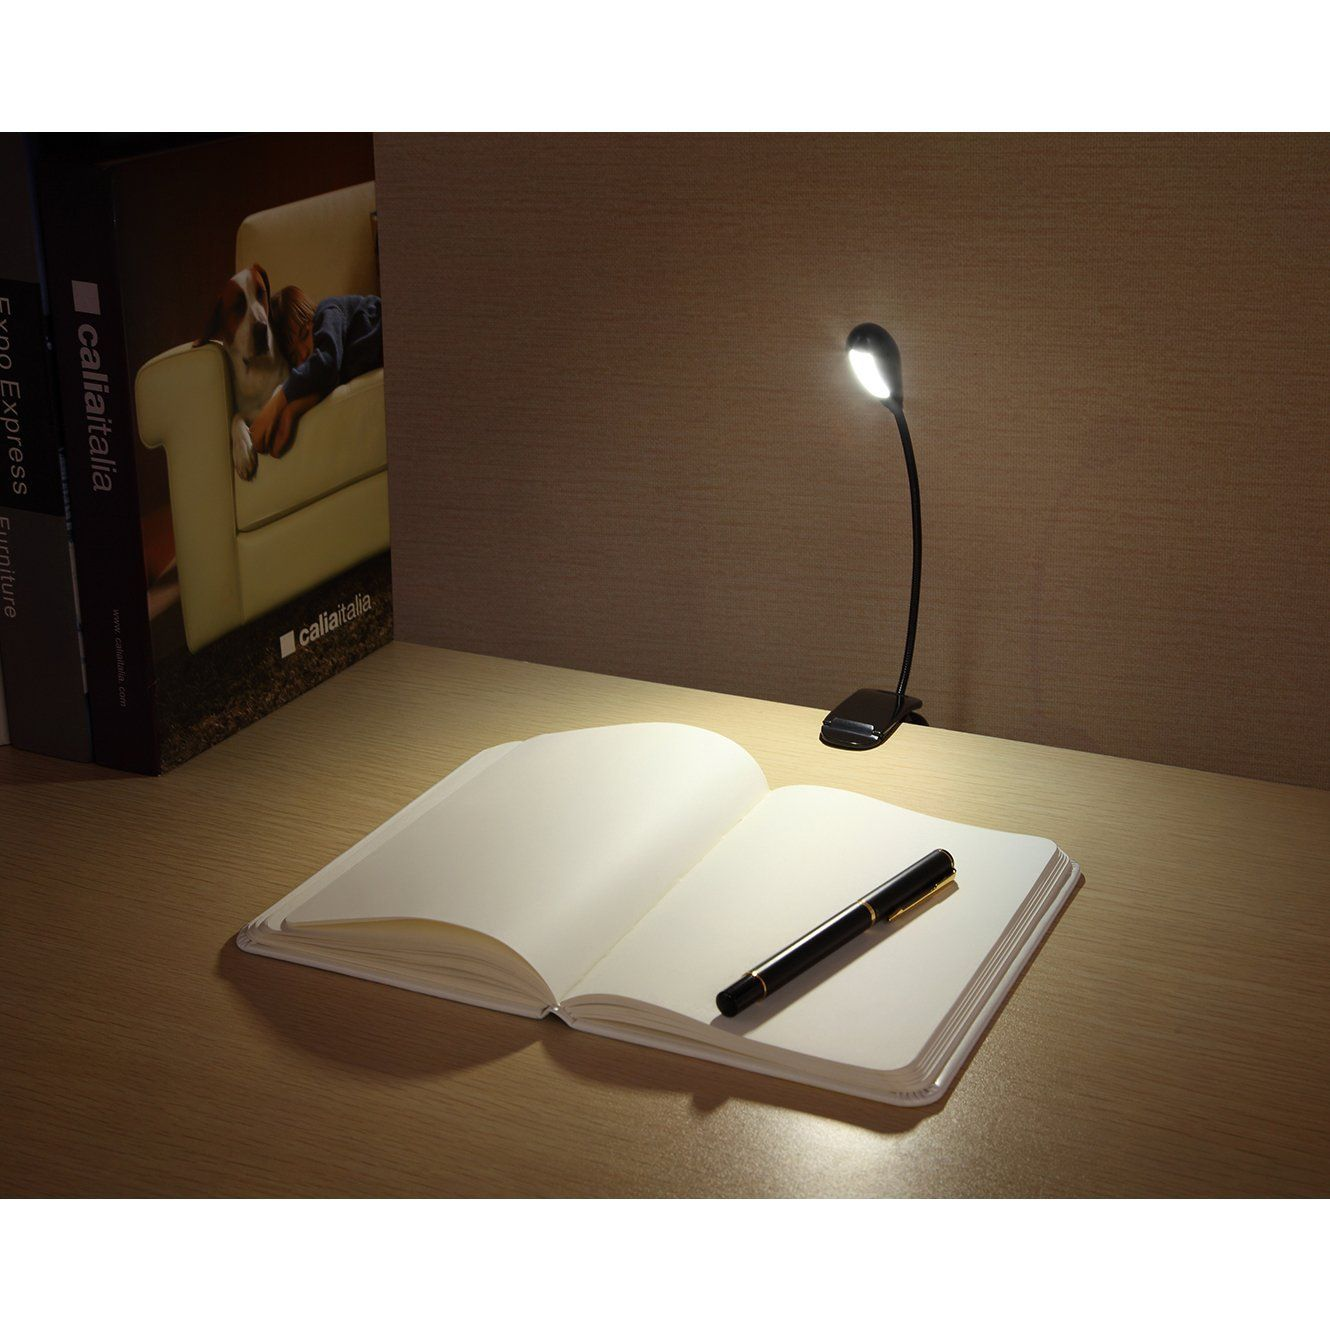 Amazon Book Light Alluring This Book Light Comes Really Recommended On Amazoni Might Need Design Inspiration